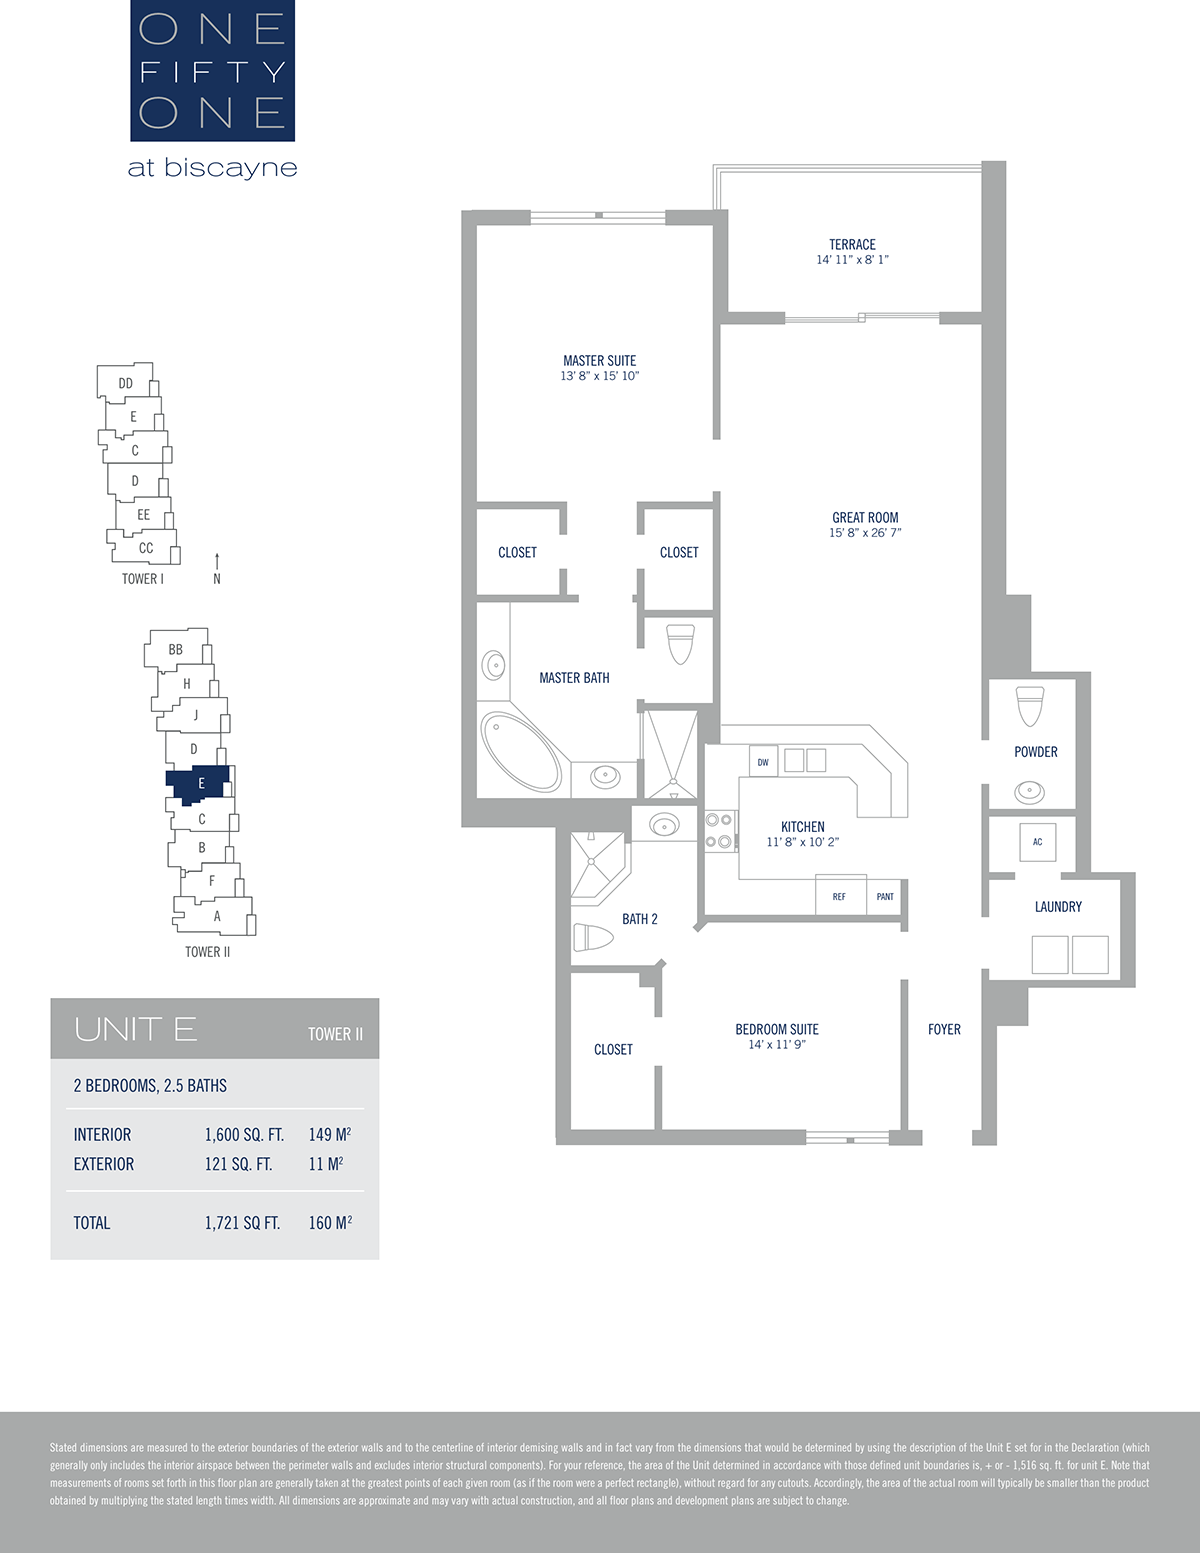 One Fifty One At Biscayne - Floorplan 7